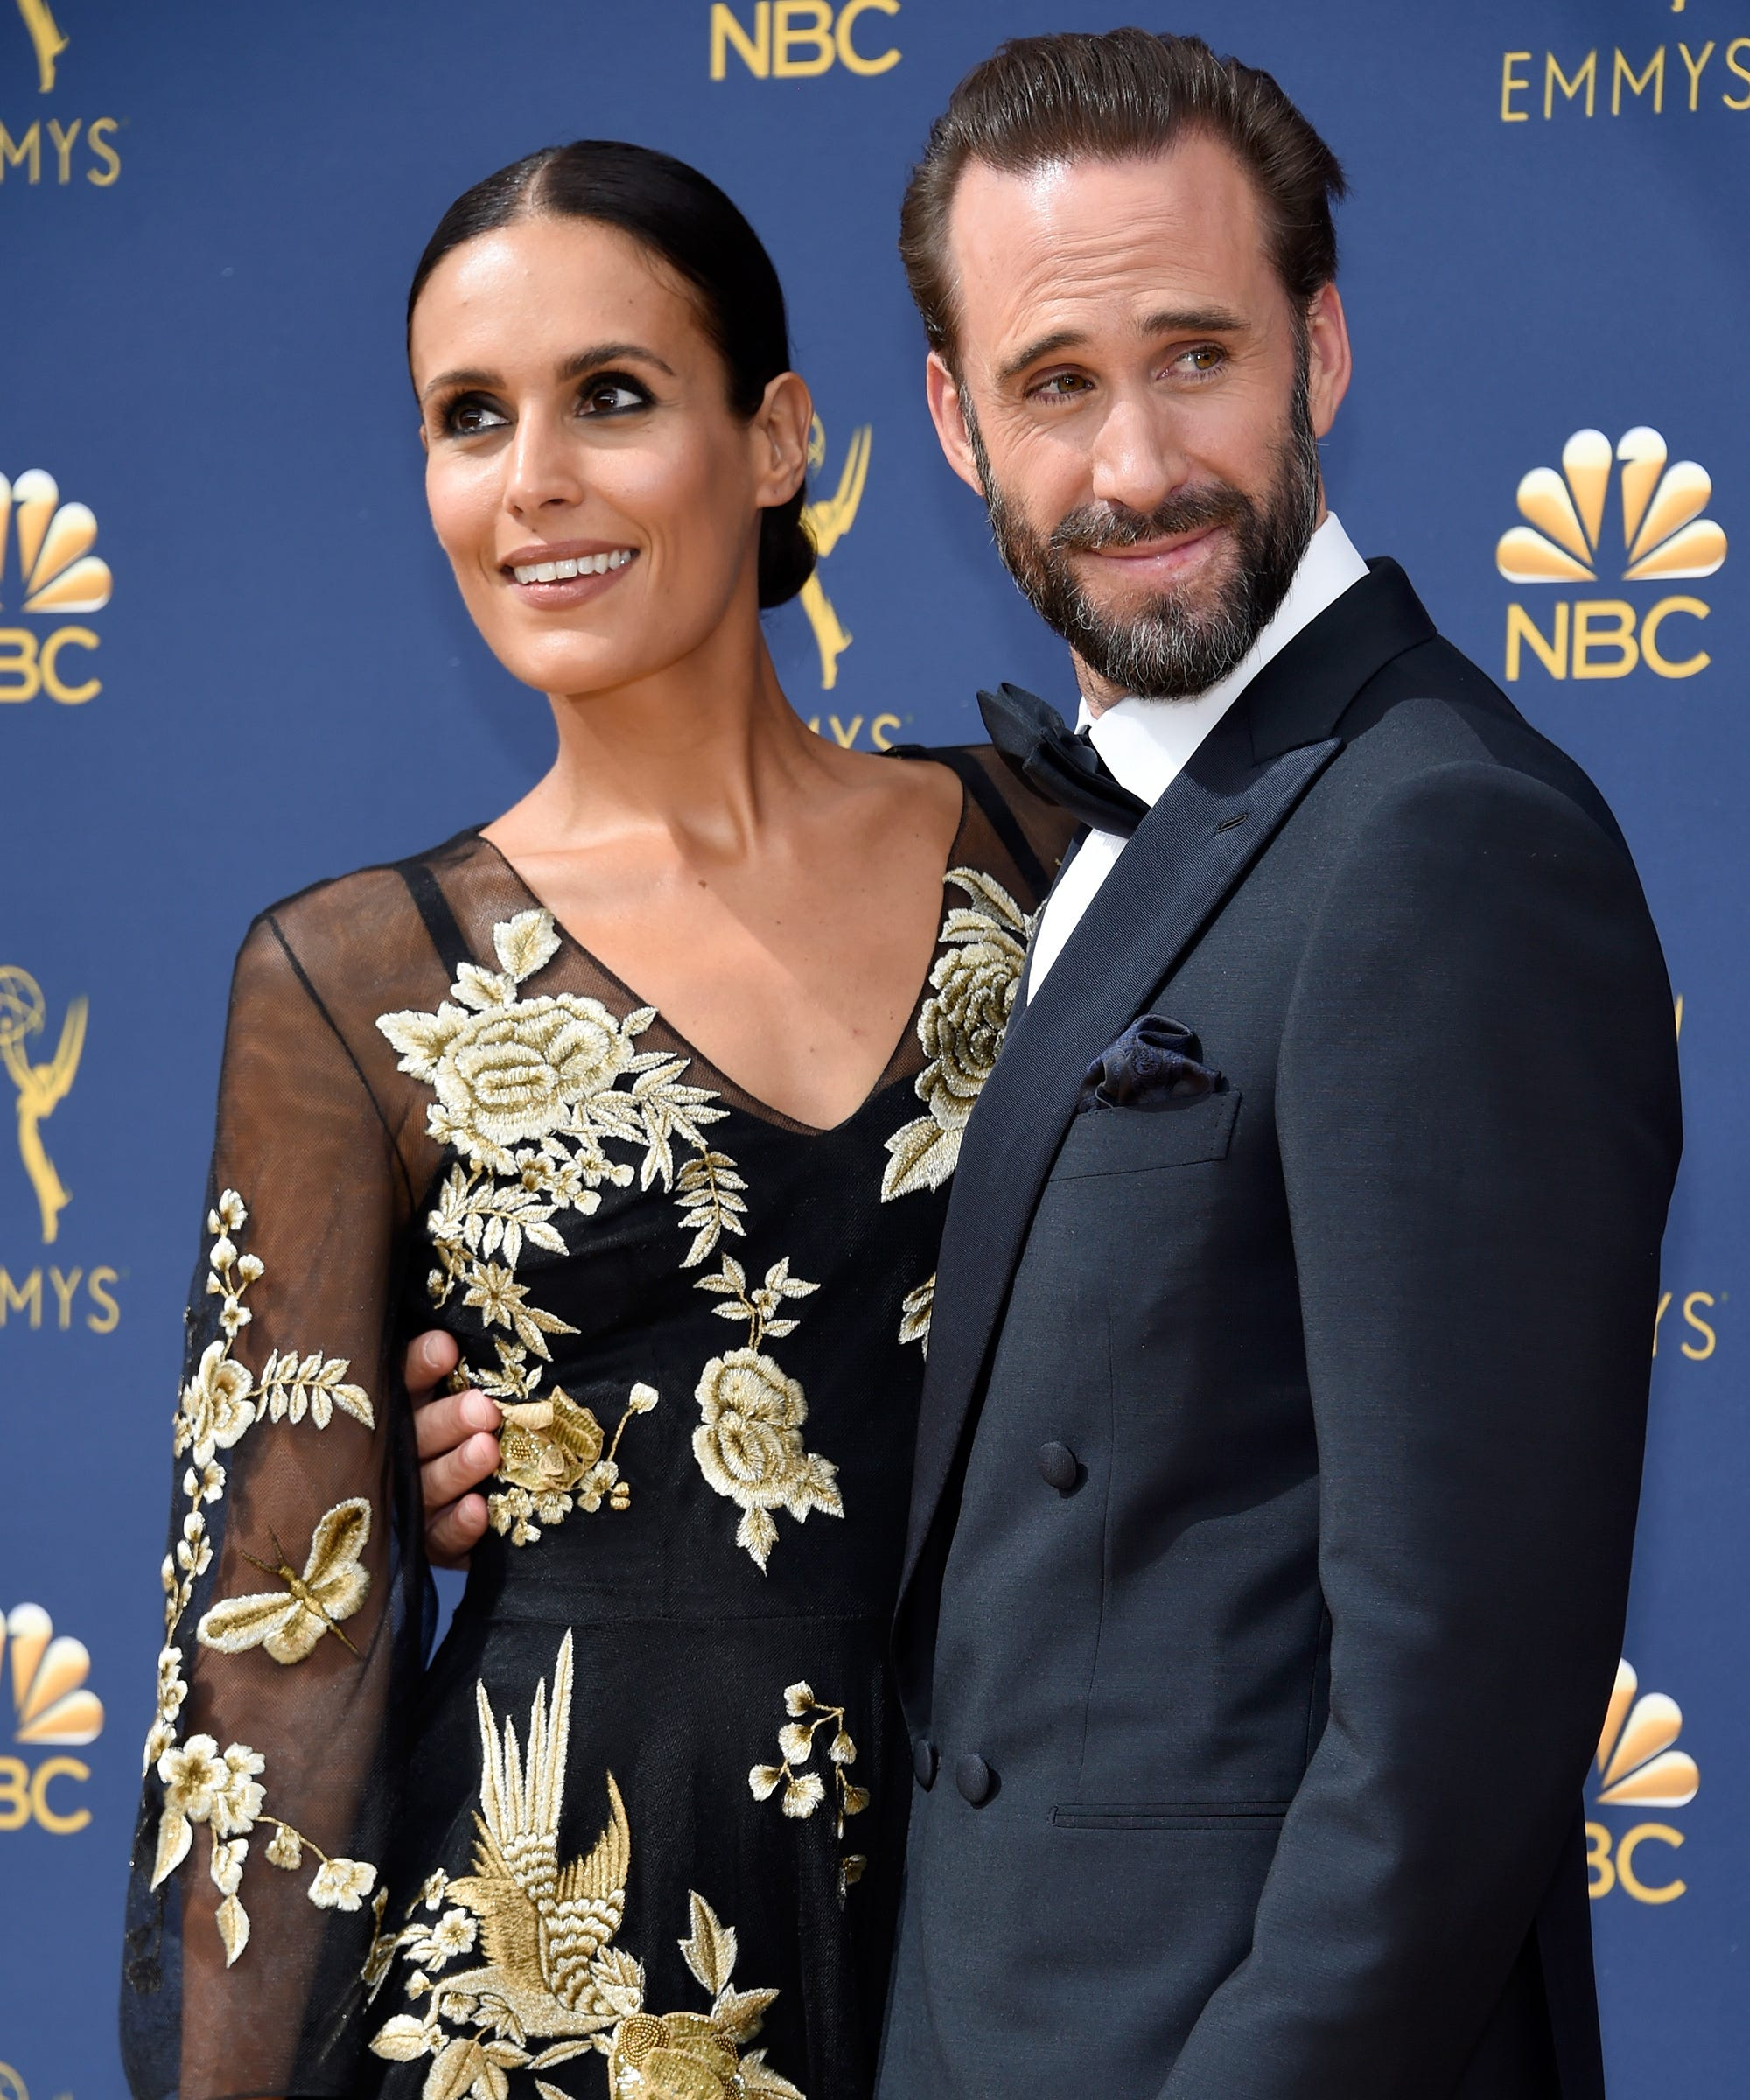 Emmys 2018 Cutest Celebrity Couples Red Carpet Photos